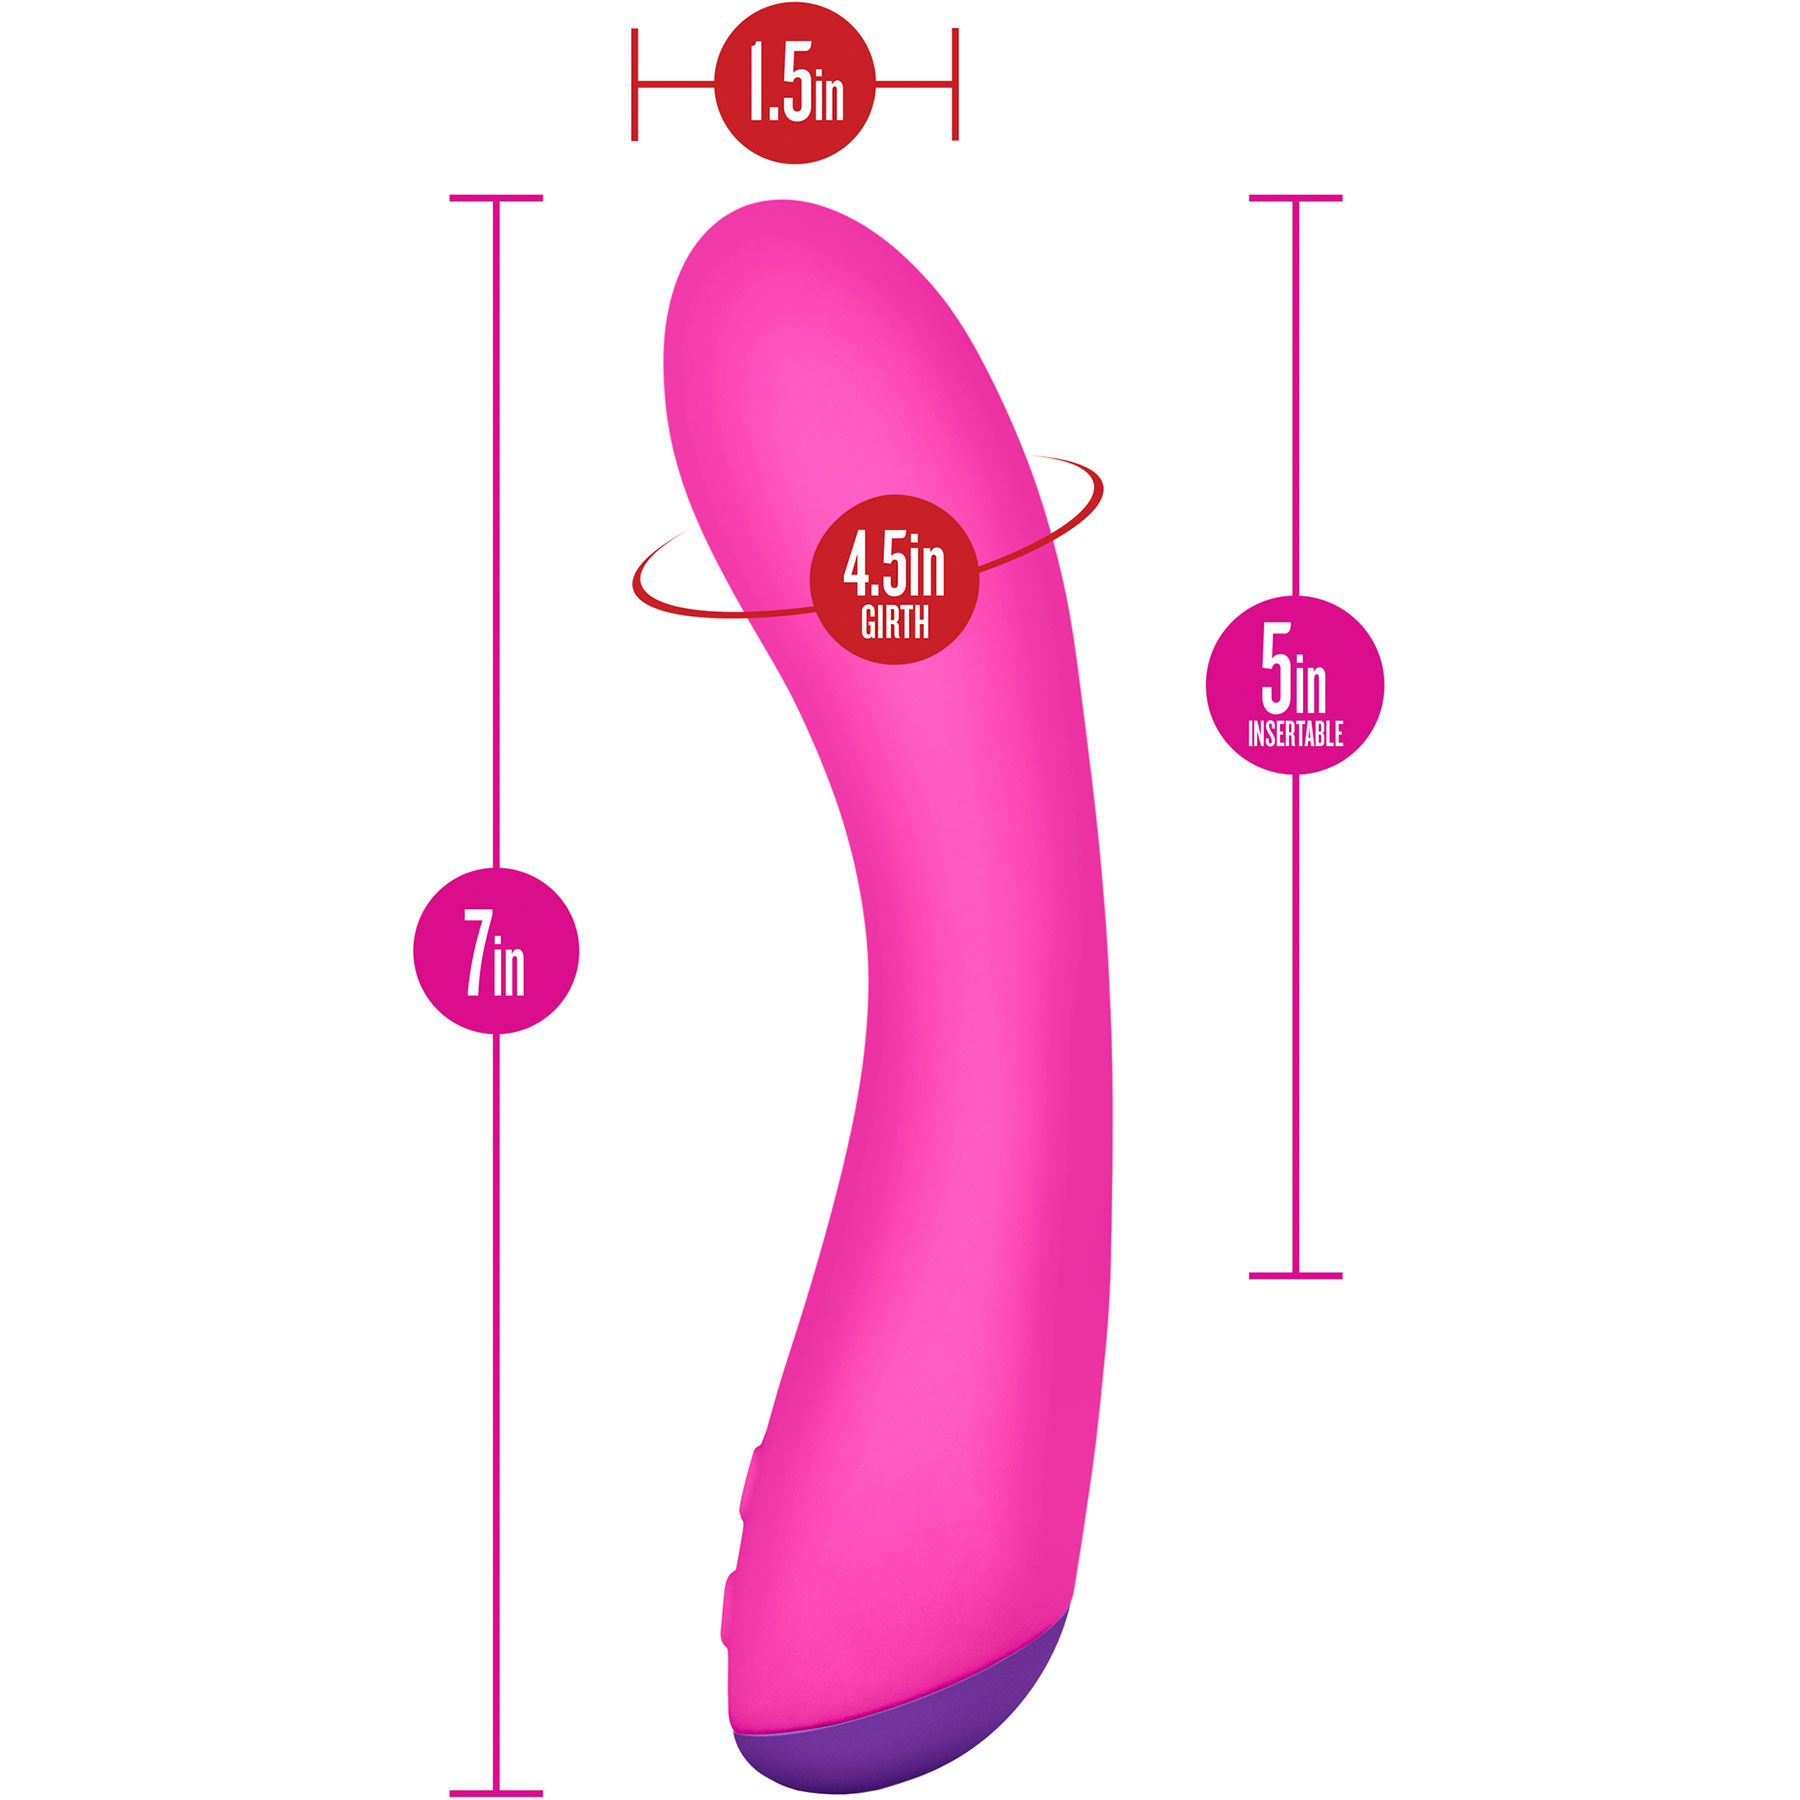 Aria Magnify Silicone G-Spot Vibrator by Blush Novelties - Measurements